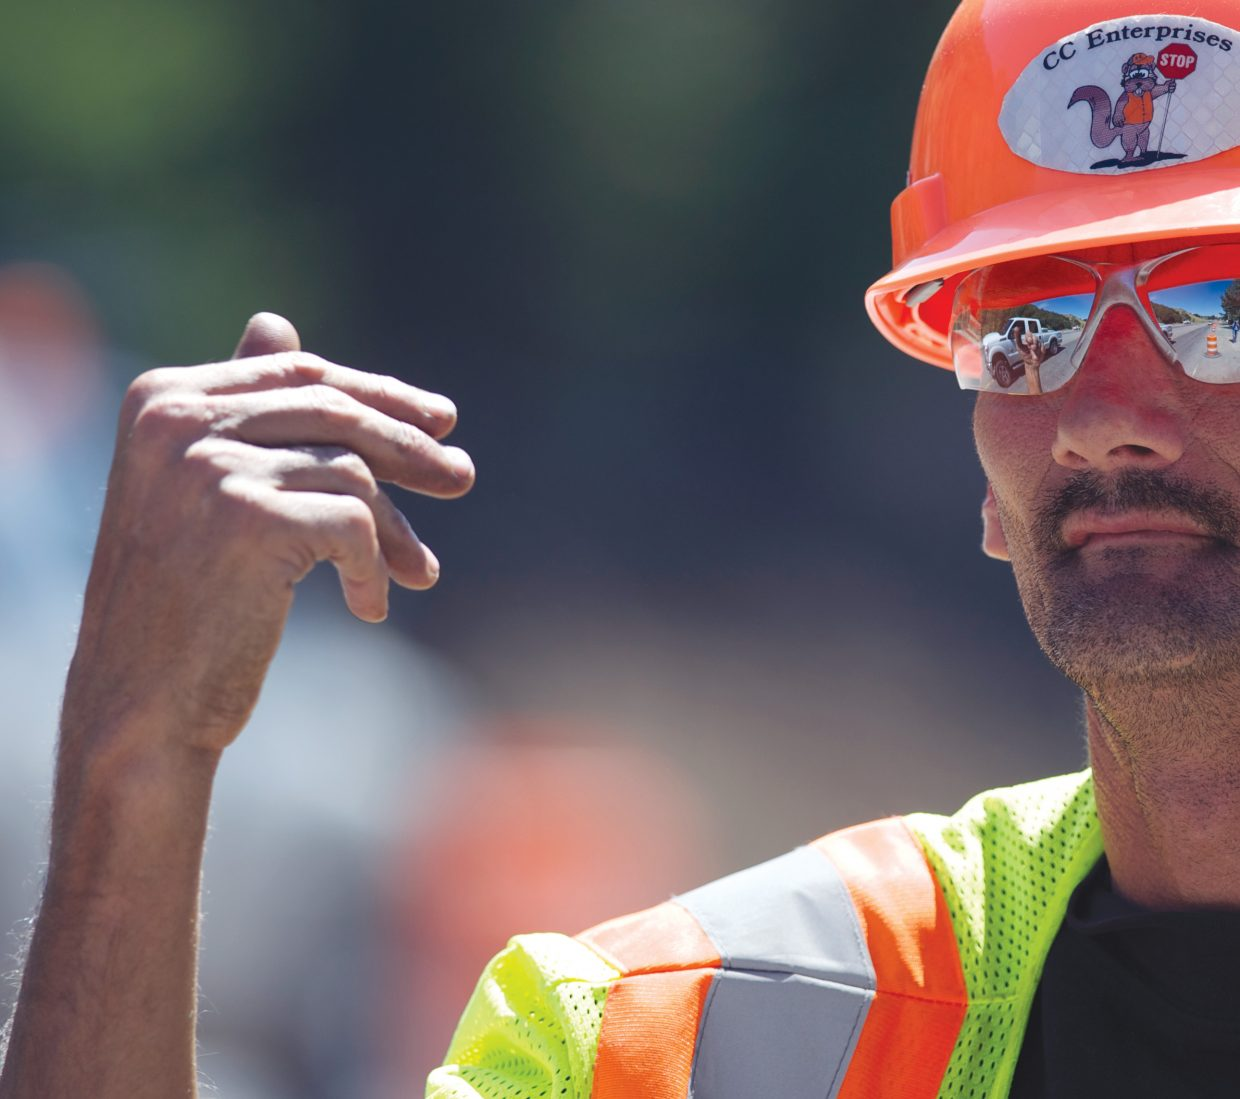 Traffic is reflected in Jerry Speicher's sunglasses as he directs traffic along Lincoln Avenue on Friday morning. A major construction and paving project has frustrated many motorist in the Steamboat area the past few days, and the end is still not in sight.